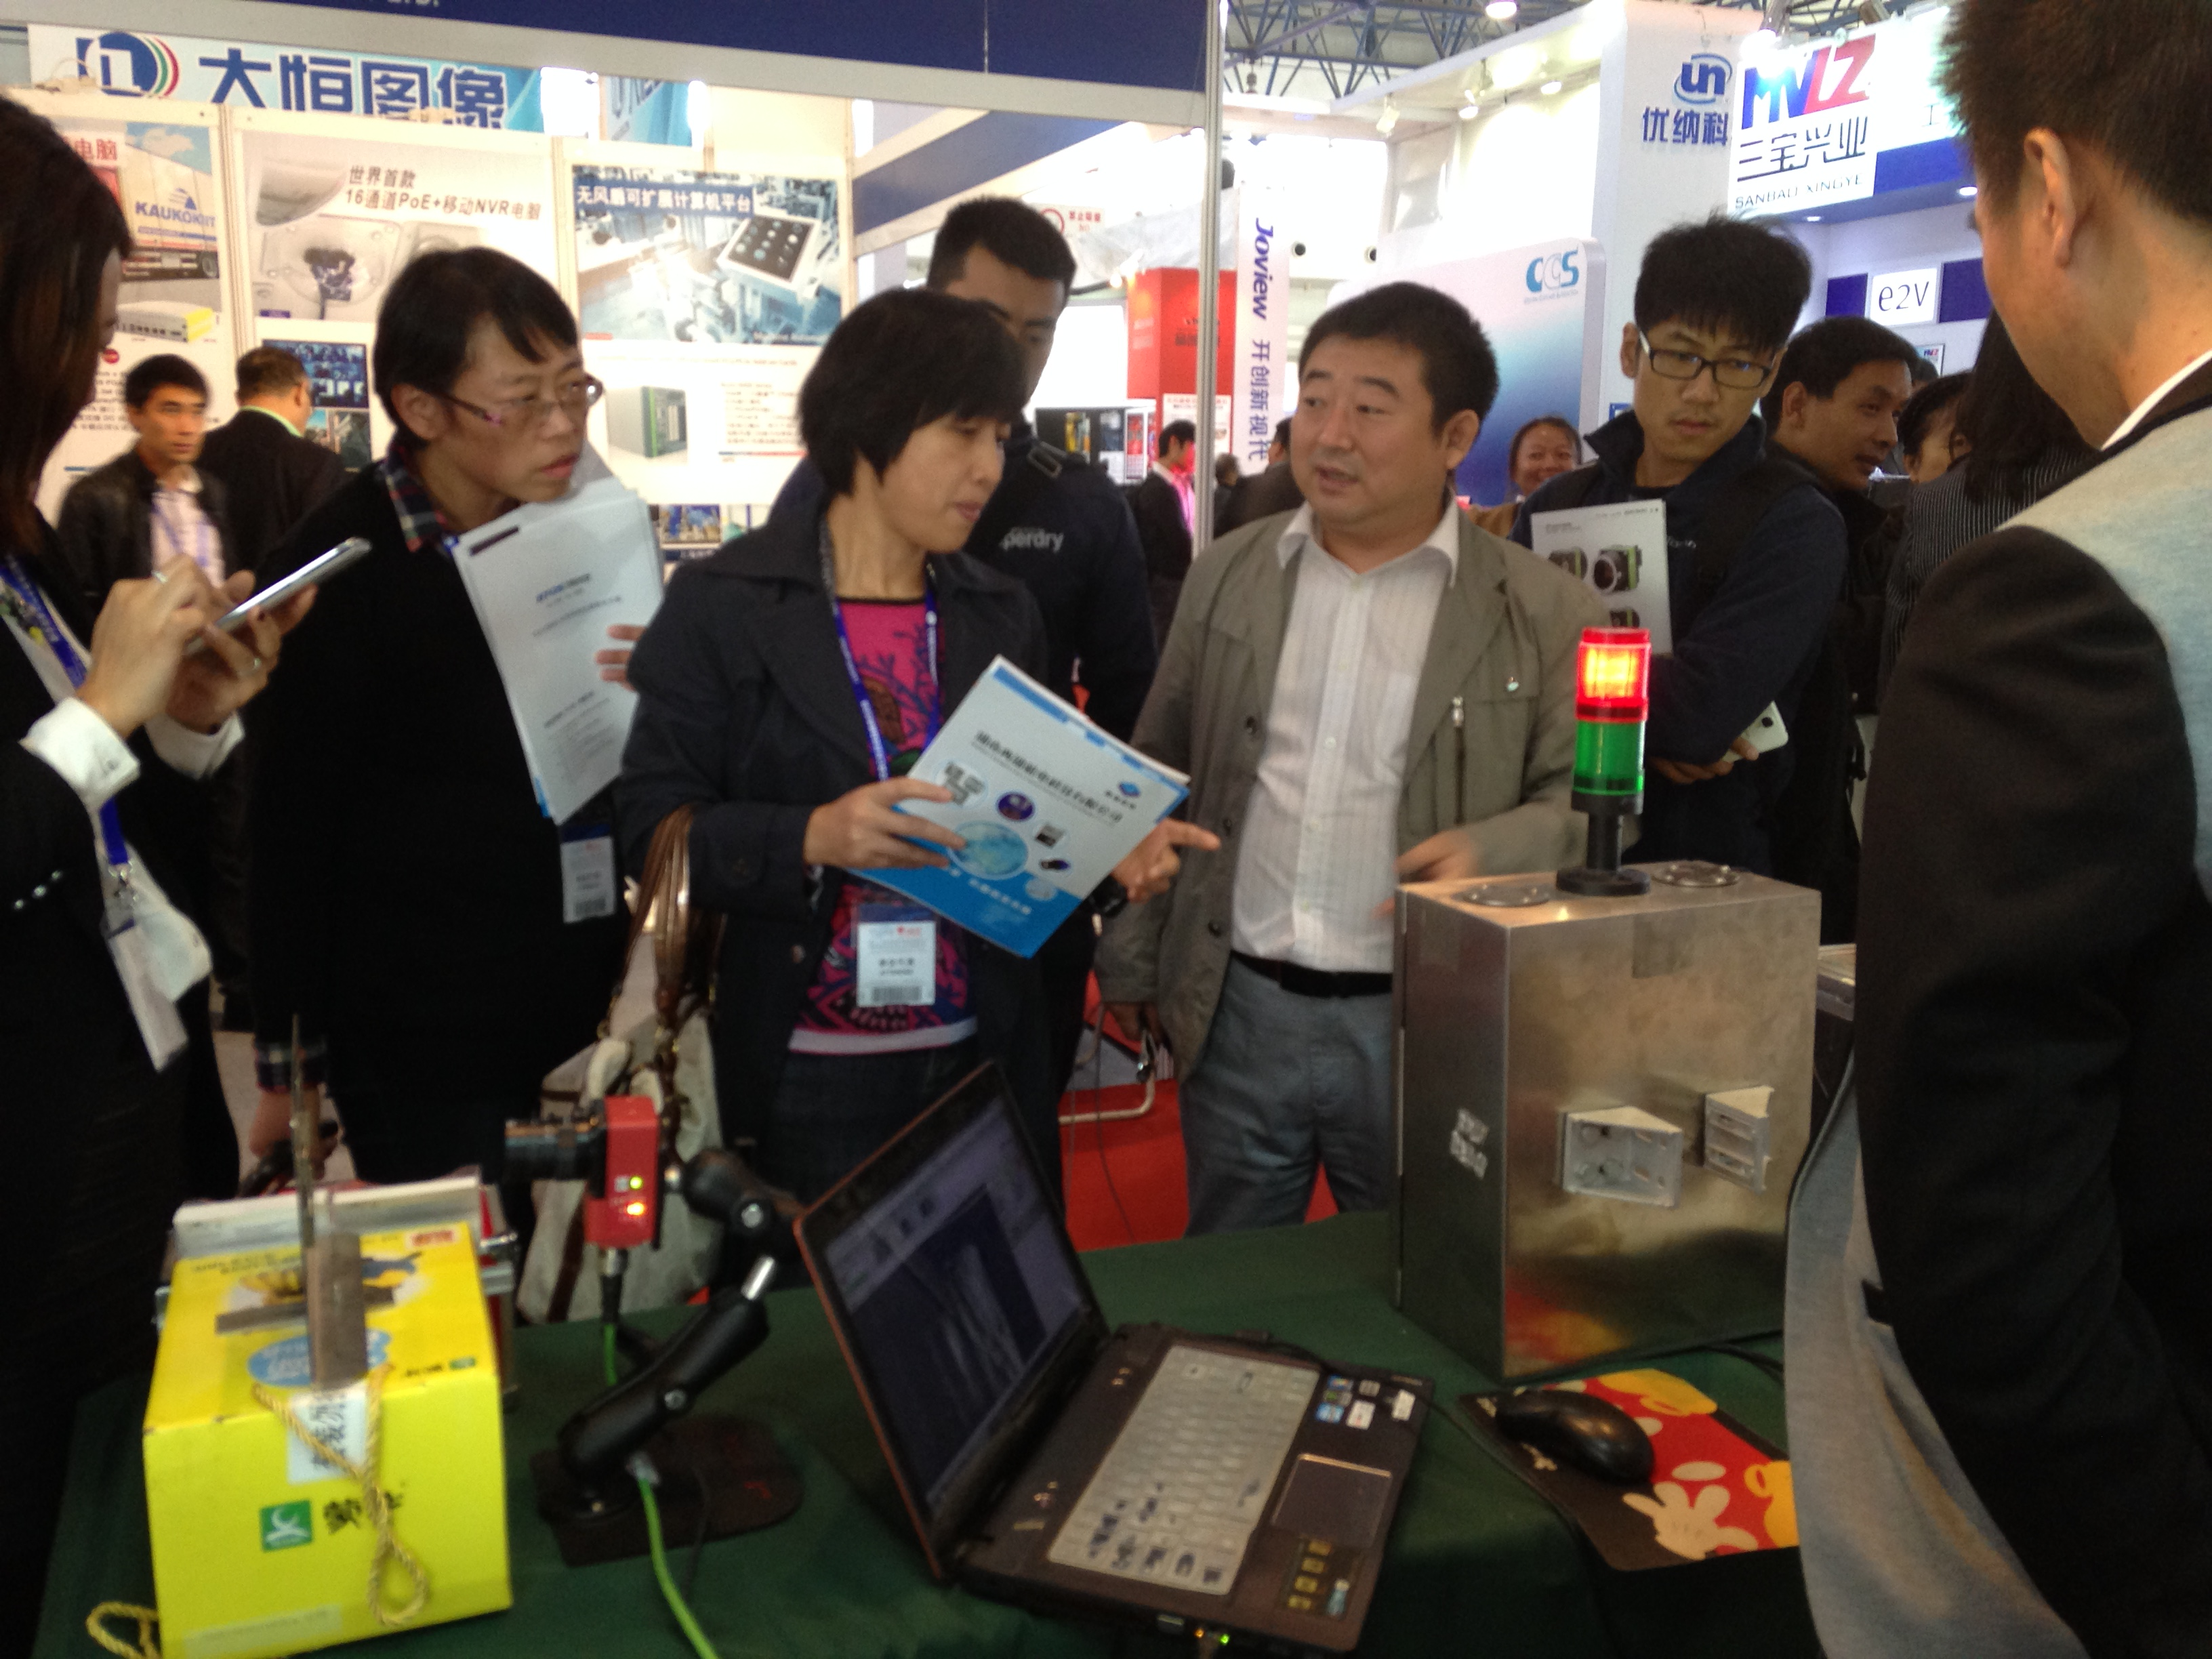 Visitors Gather Around Beijing Nodes Booth at Vision China